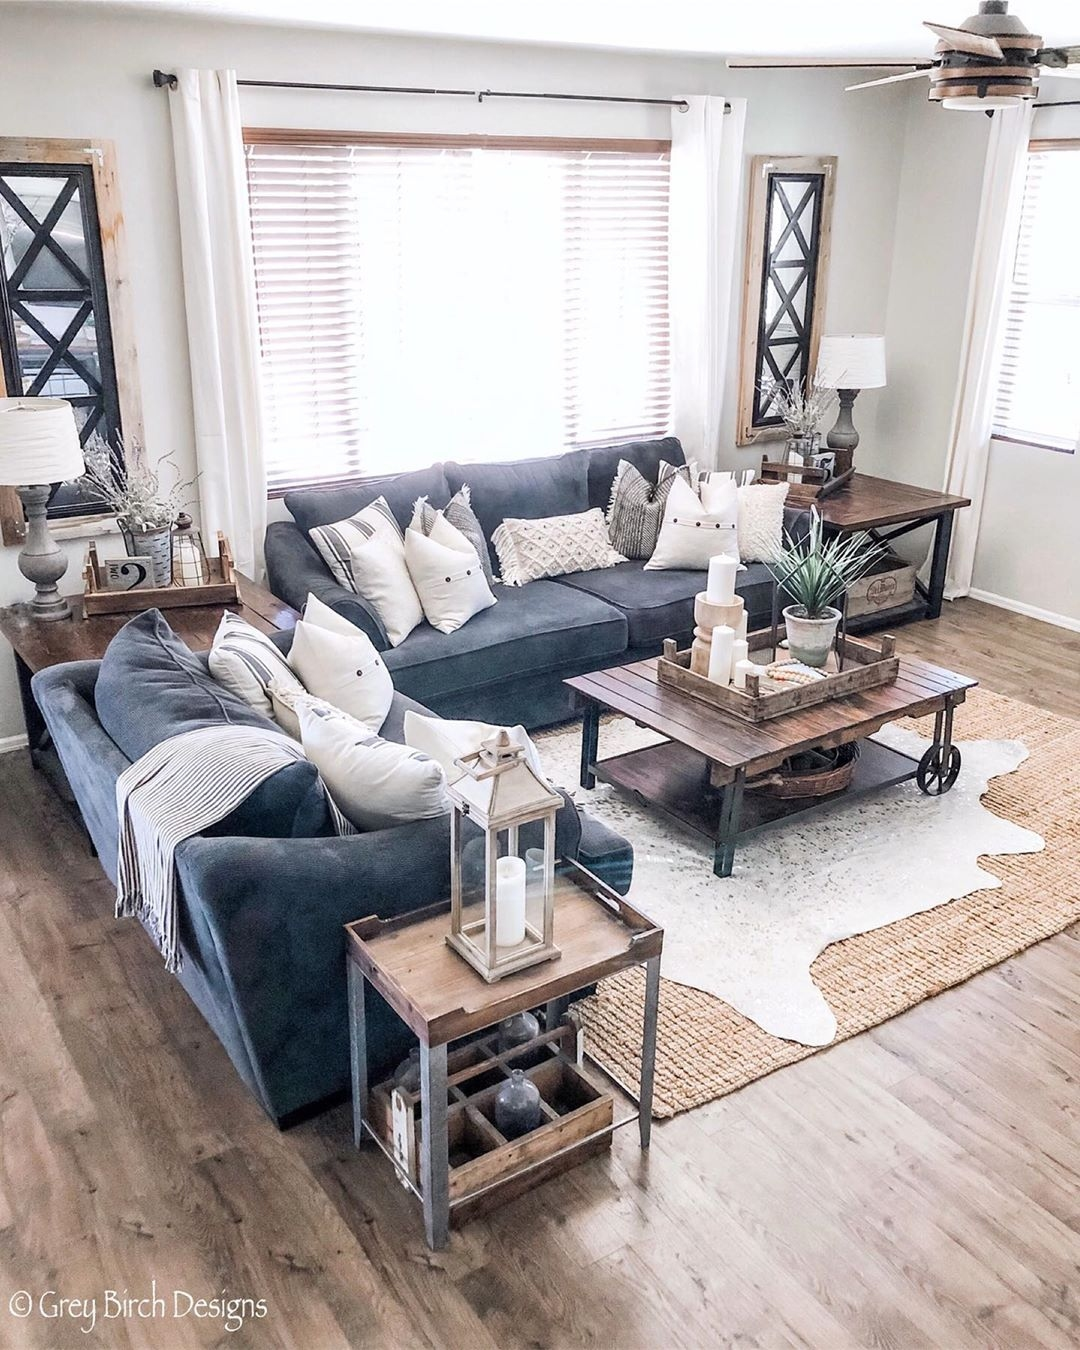 Every well dressed home like greybirchdesigns needs a cowhide rug with metallic, a extra modern to your space and provide the warmth to your decor